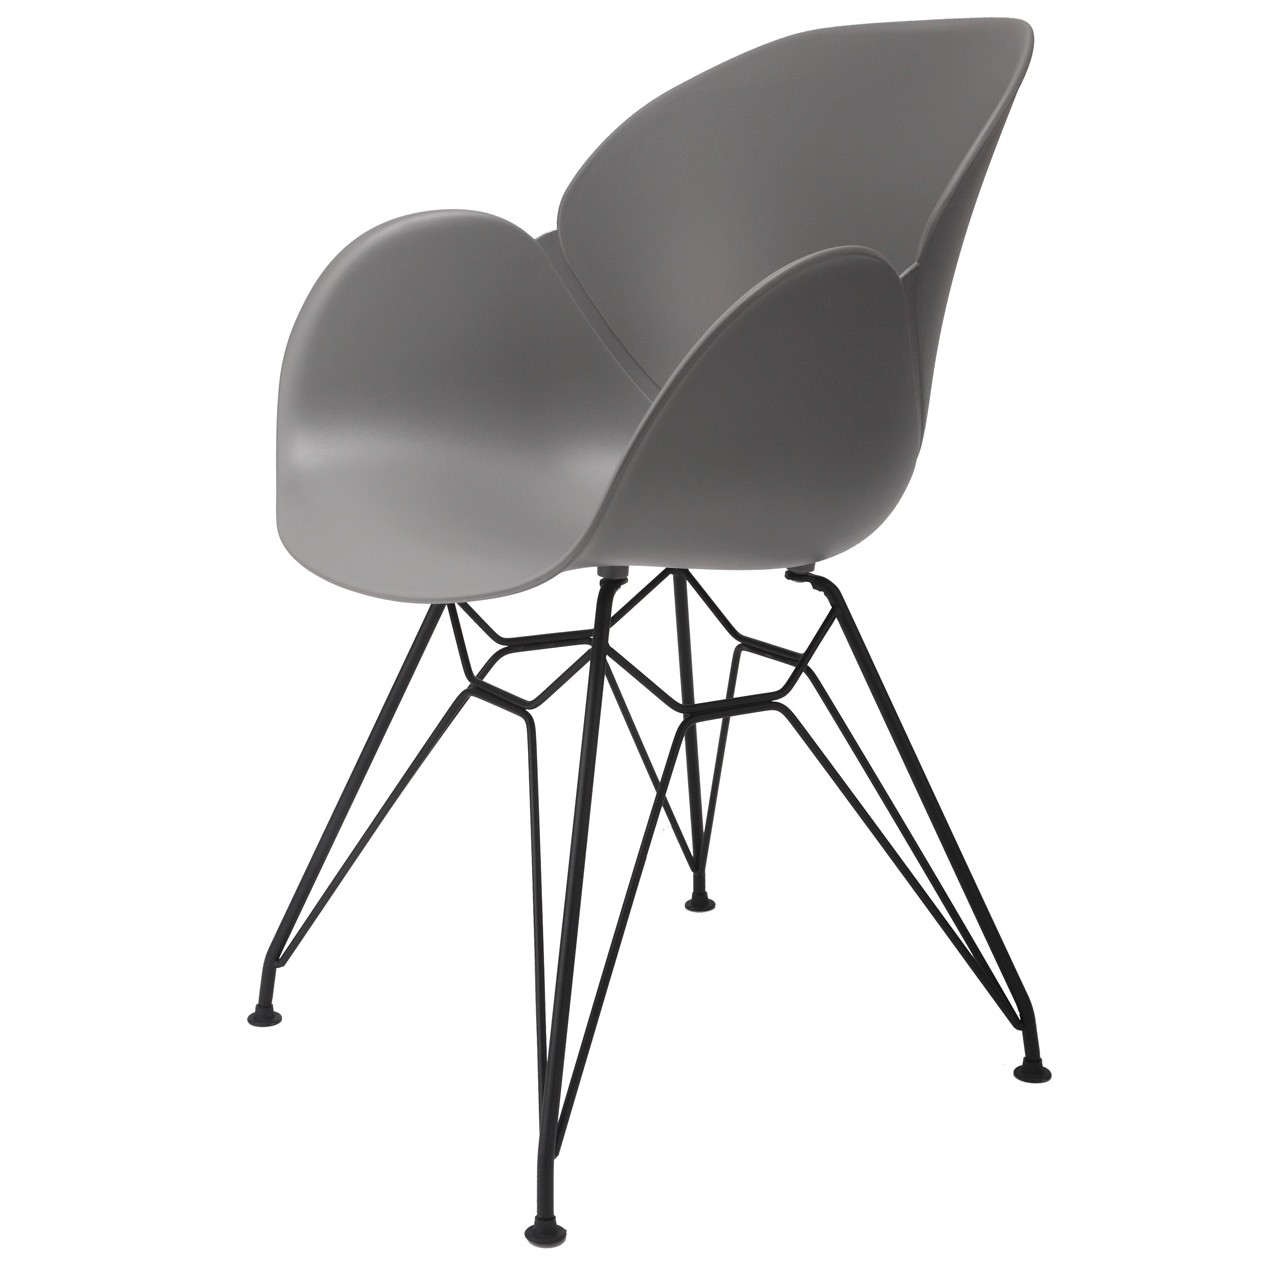 Accent Dining Chairs Flora Gray Modern Accent Dining Chair With Black Steel Legs